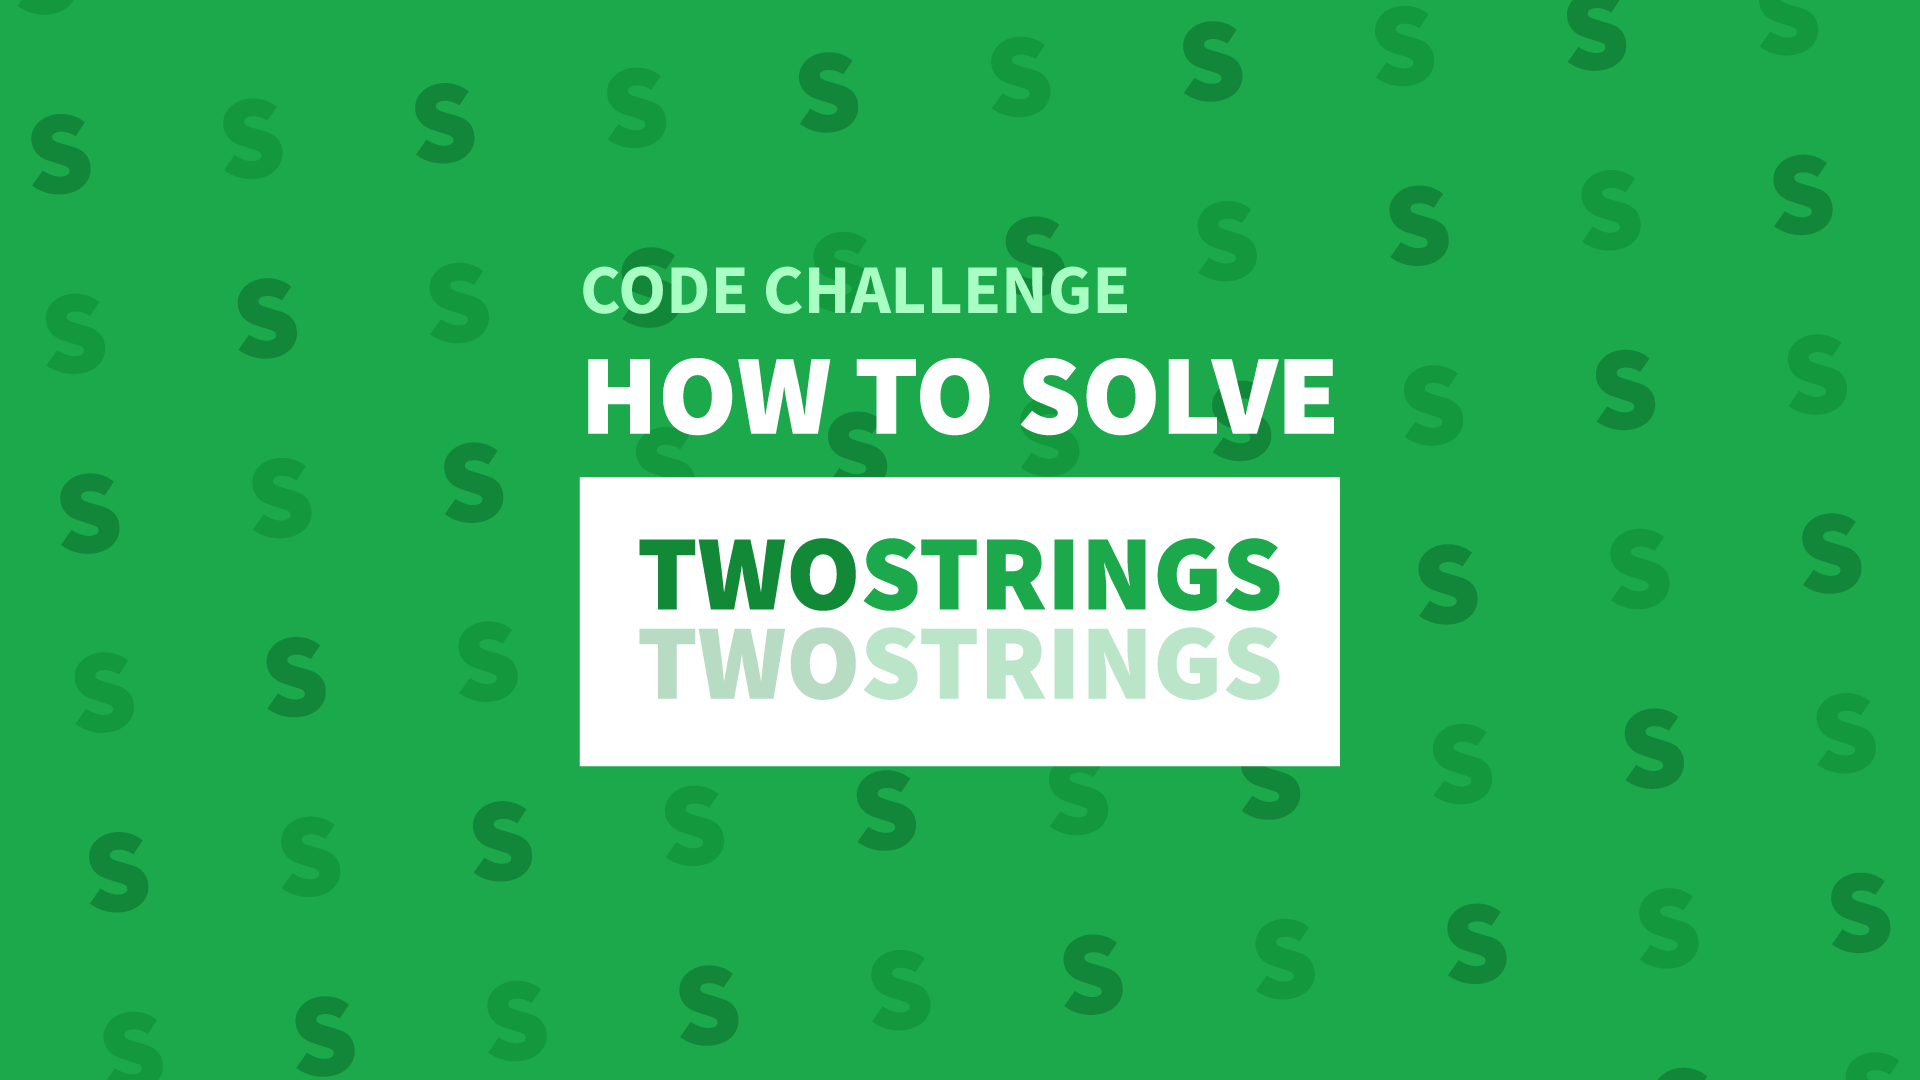 How To Solve The Two Strings Code Challenge - Manny Codes